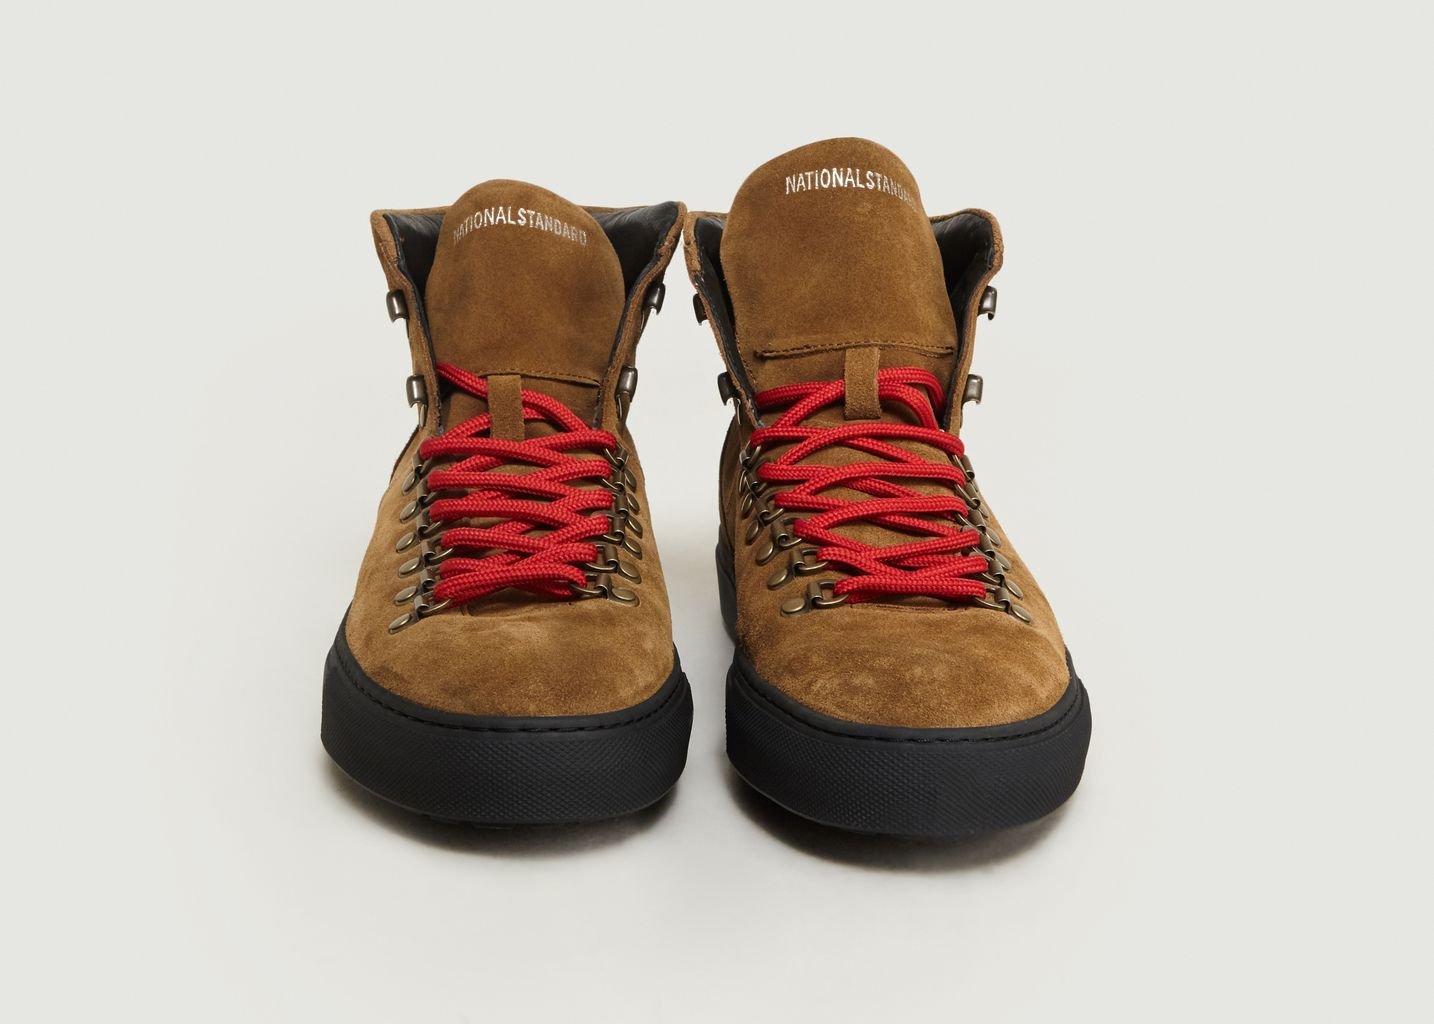 Boots Edition 9 Mountain - National Standard